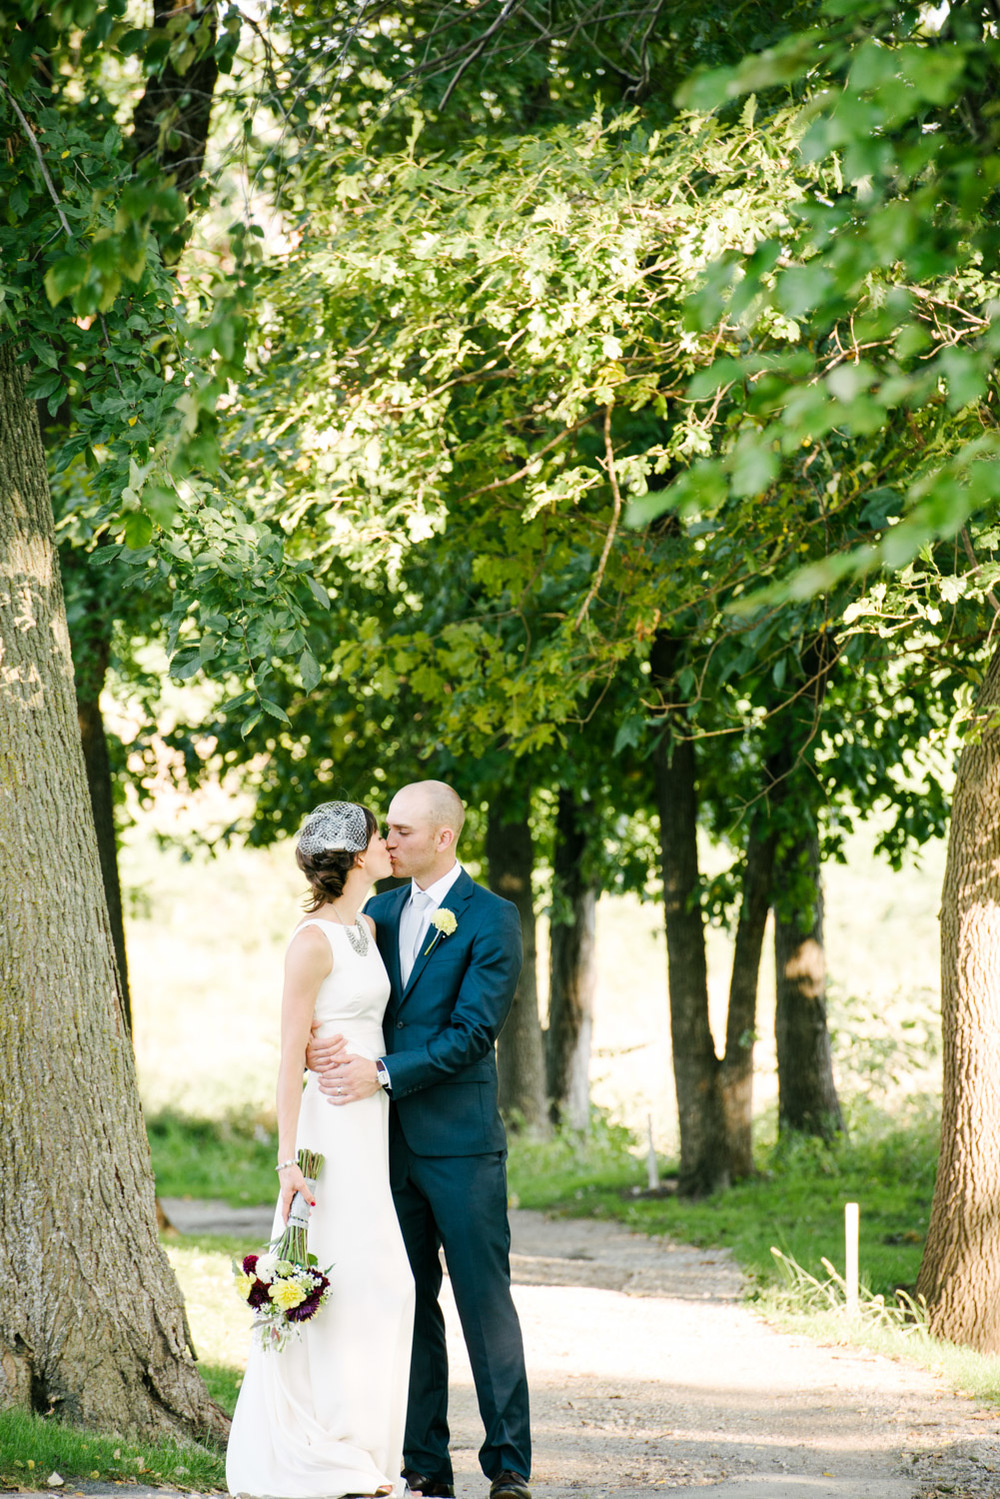 Wedding-Photography-Bee-C-Photography-Iowa-Oskaloosa-Des-Moines-17.jpg